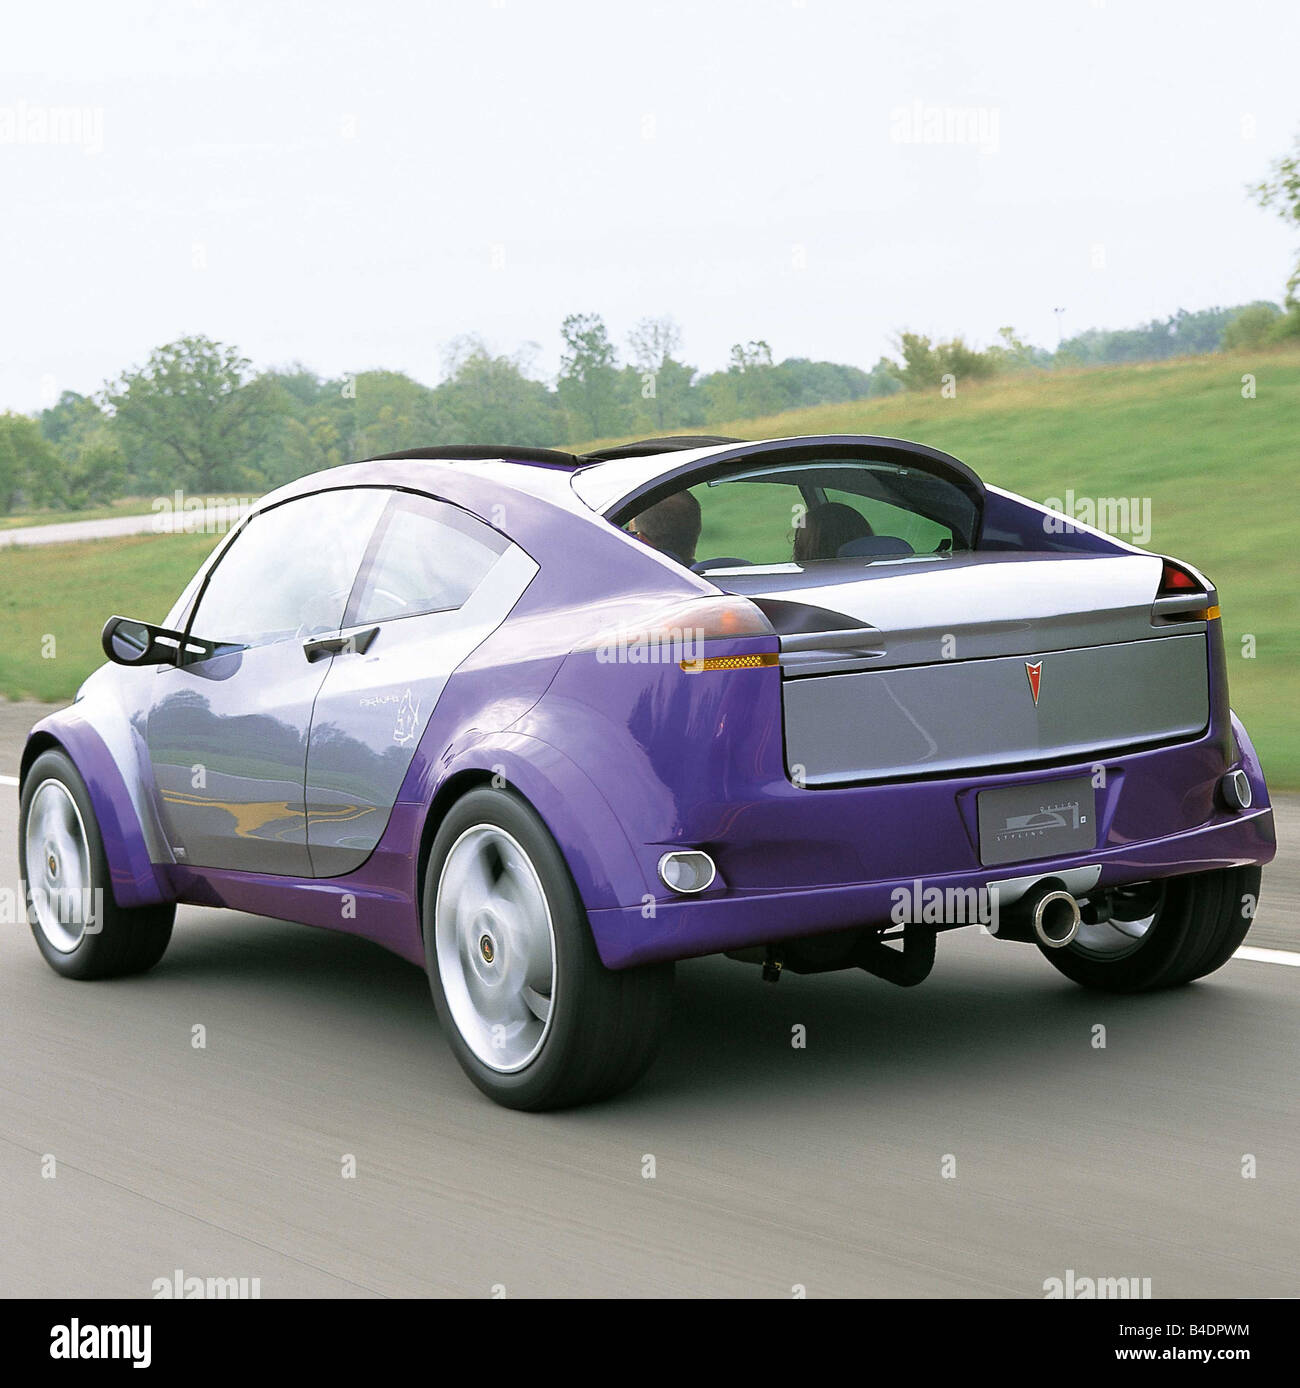 Car, Concept Cars General engines, Pontiac, model year 2000, mauve, diagonal from the back, driving, ams 13/2000, - Stock Image